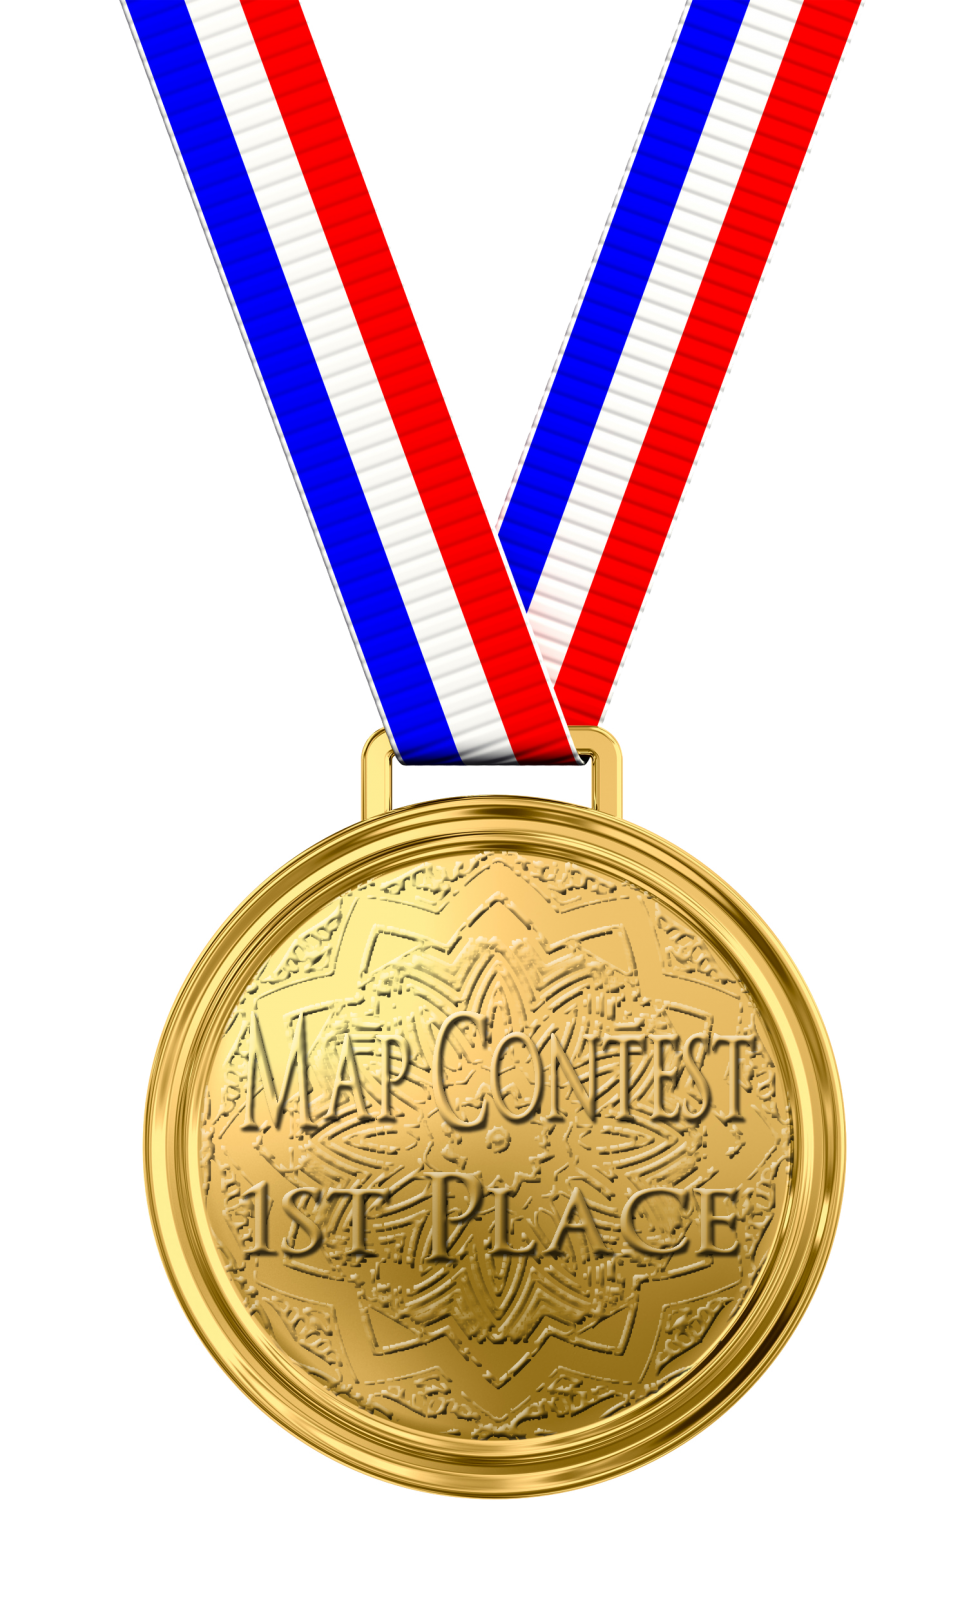 1st Place Medal PNG Image